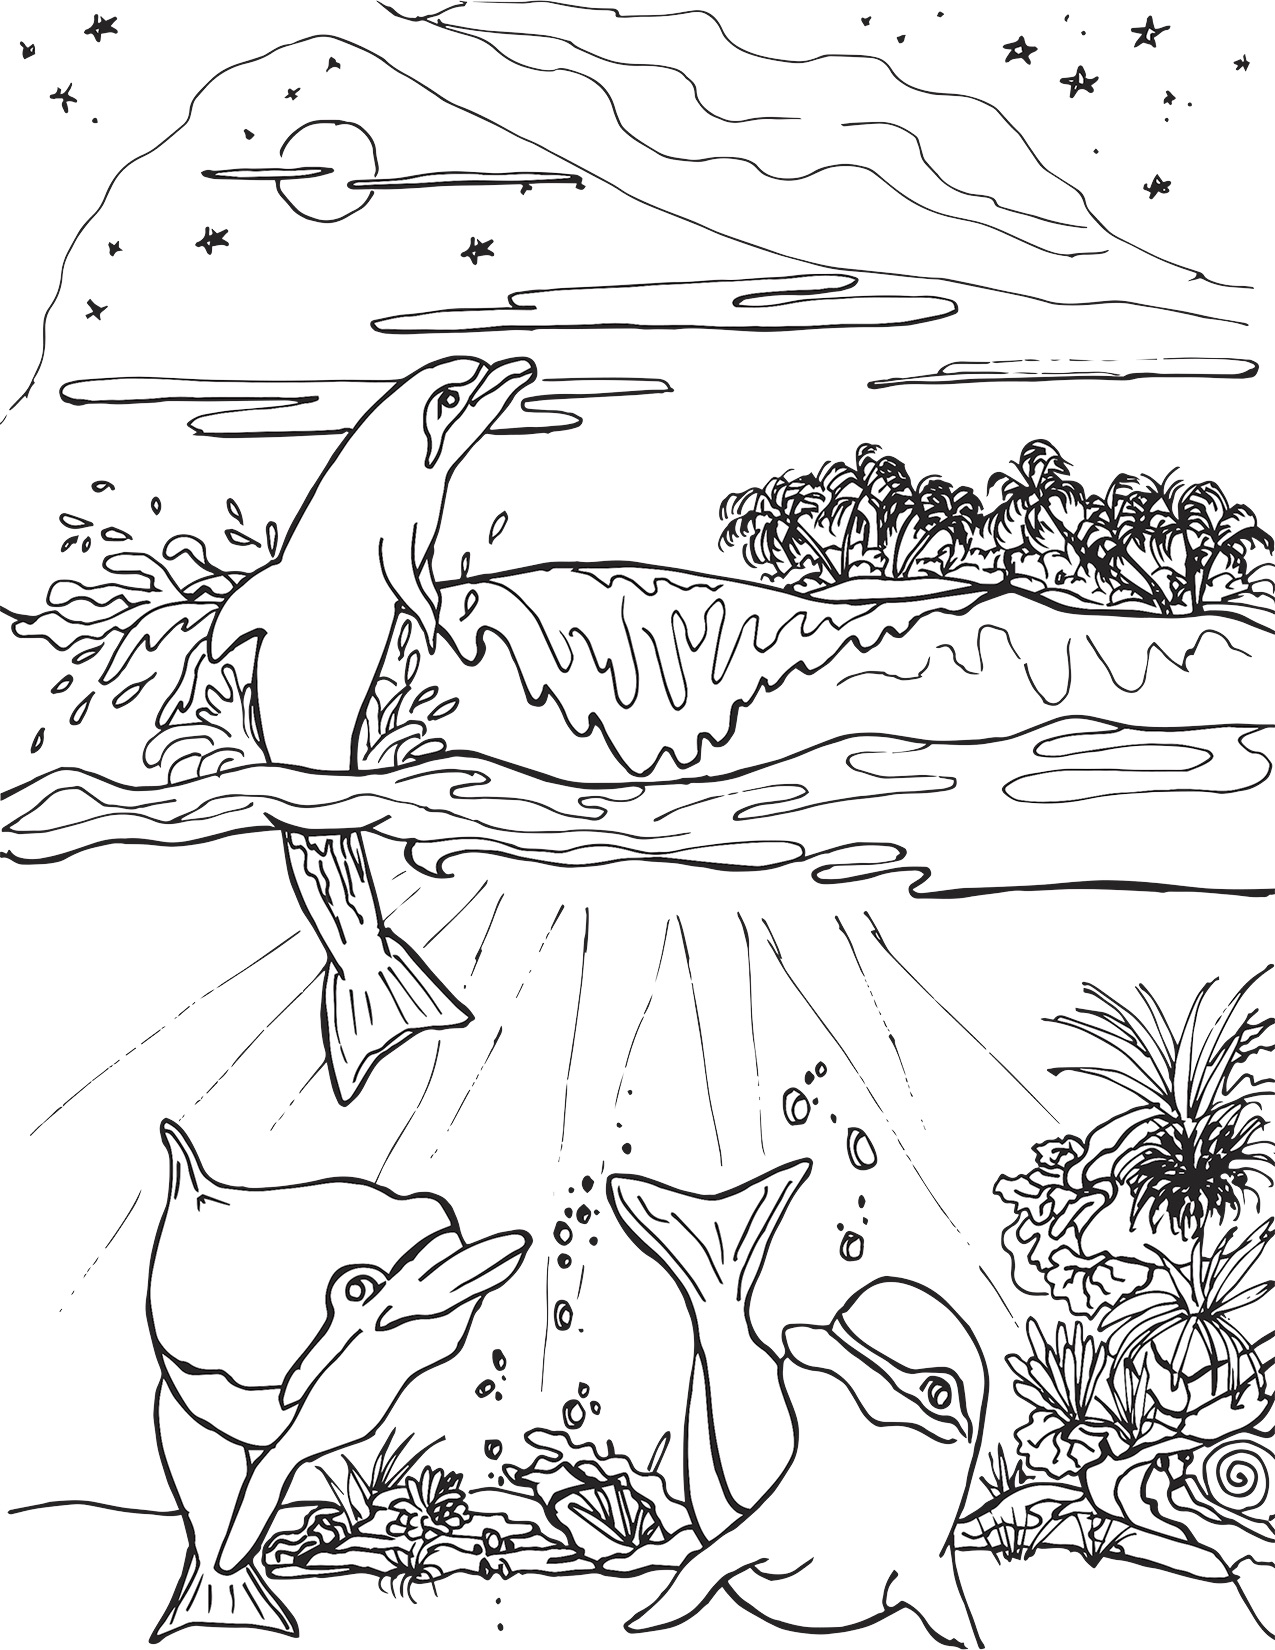 Three Dolphins Frolicking Near Island Coloring Page